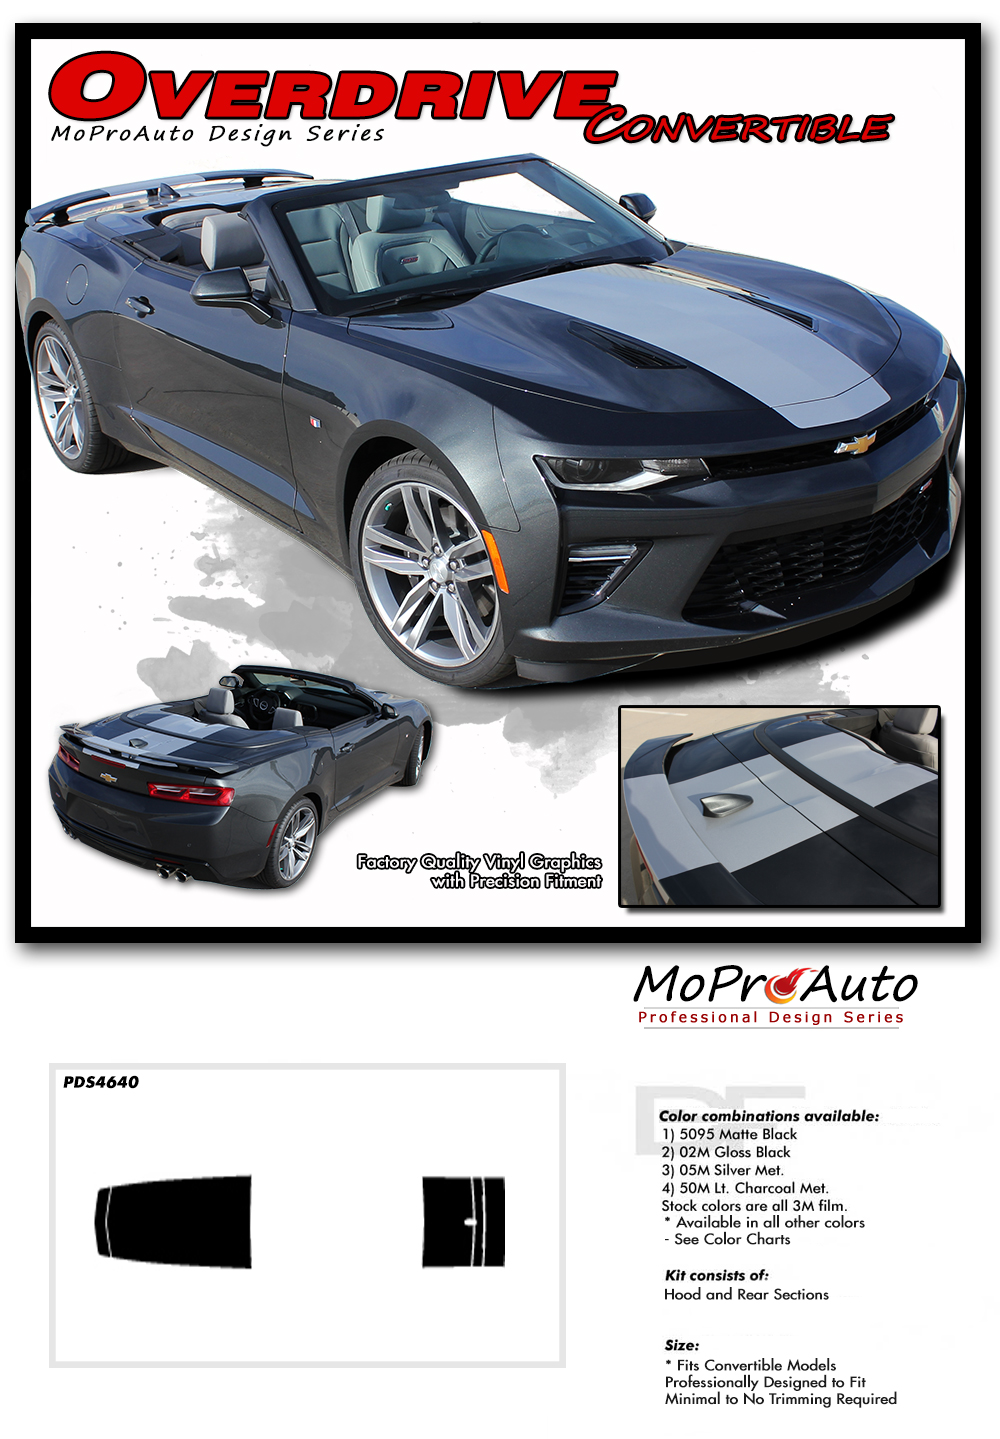 2016 2017 2018 Chevy SS RS Camaro Convertible OVERDRIVE Vinyl Graphics Kits, Decals, Stripes